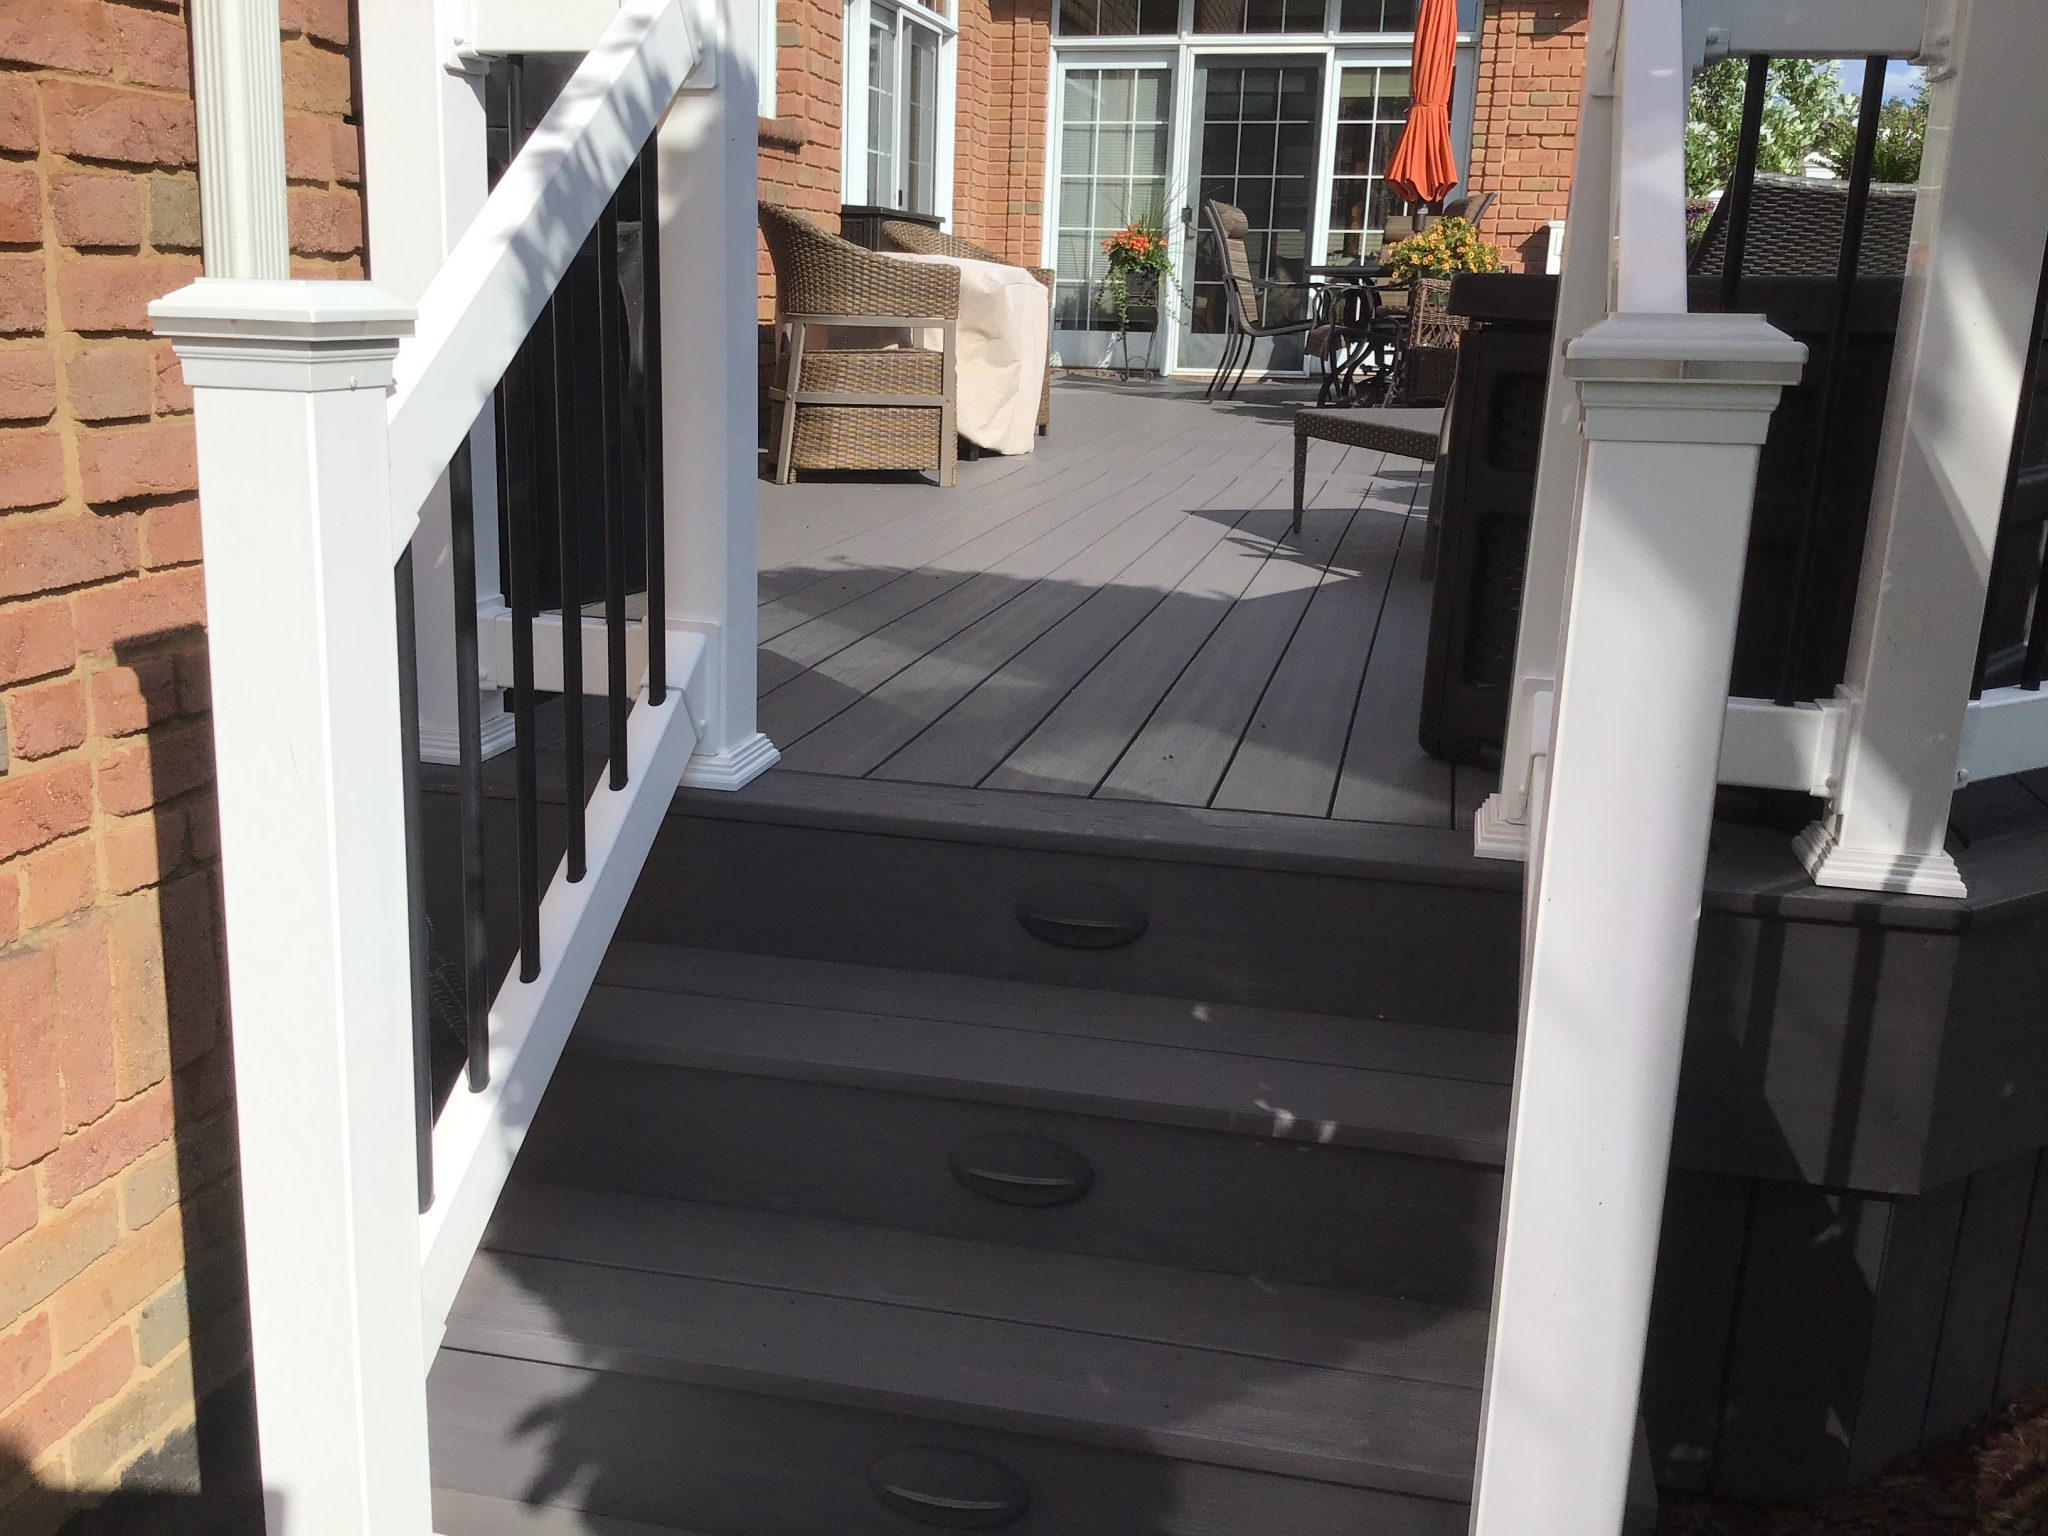 newly installed deck stairs and railing